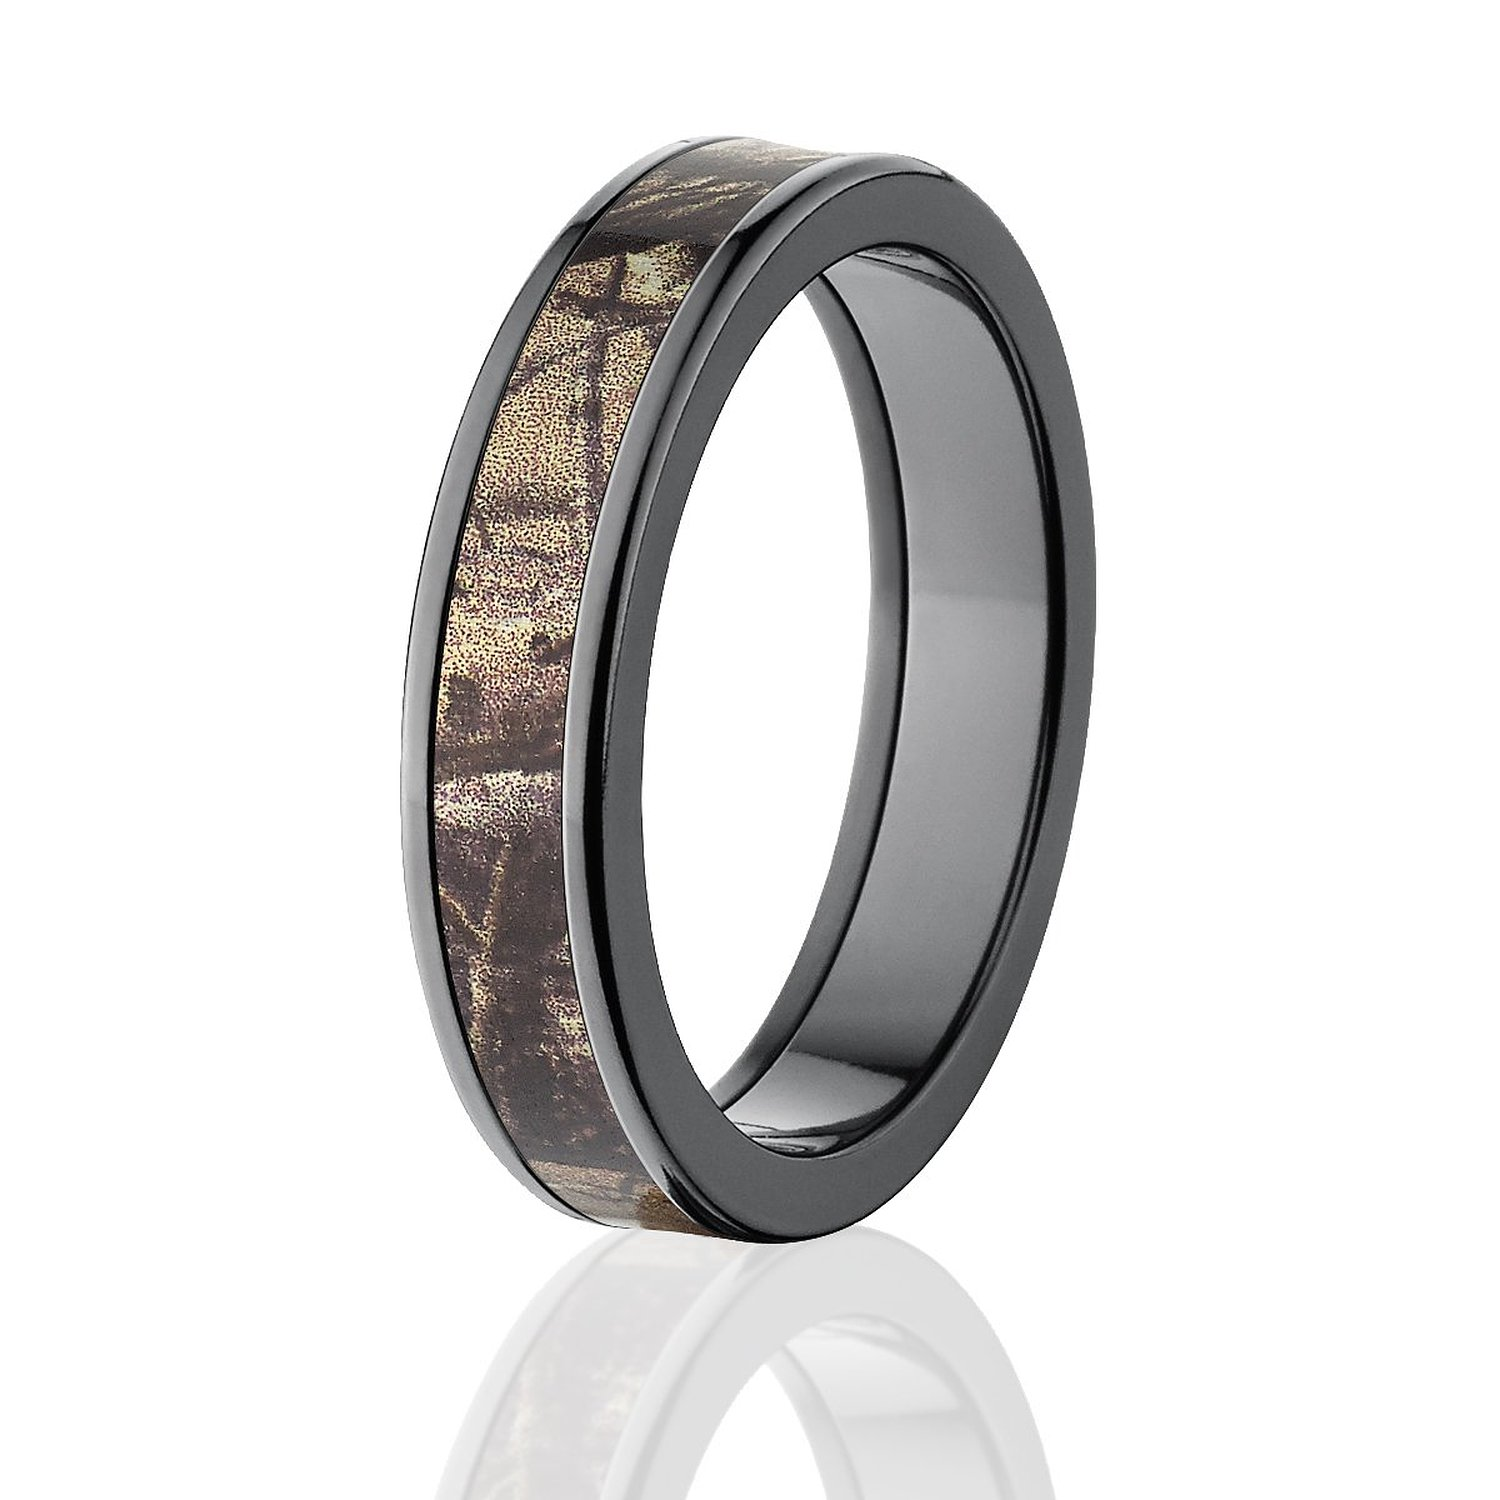 : realtree camo wedding band